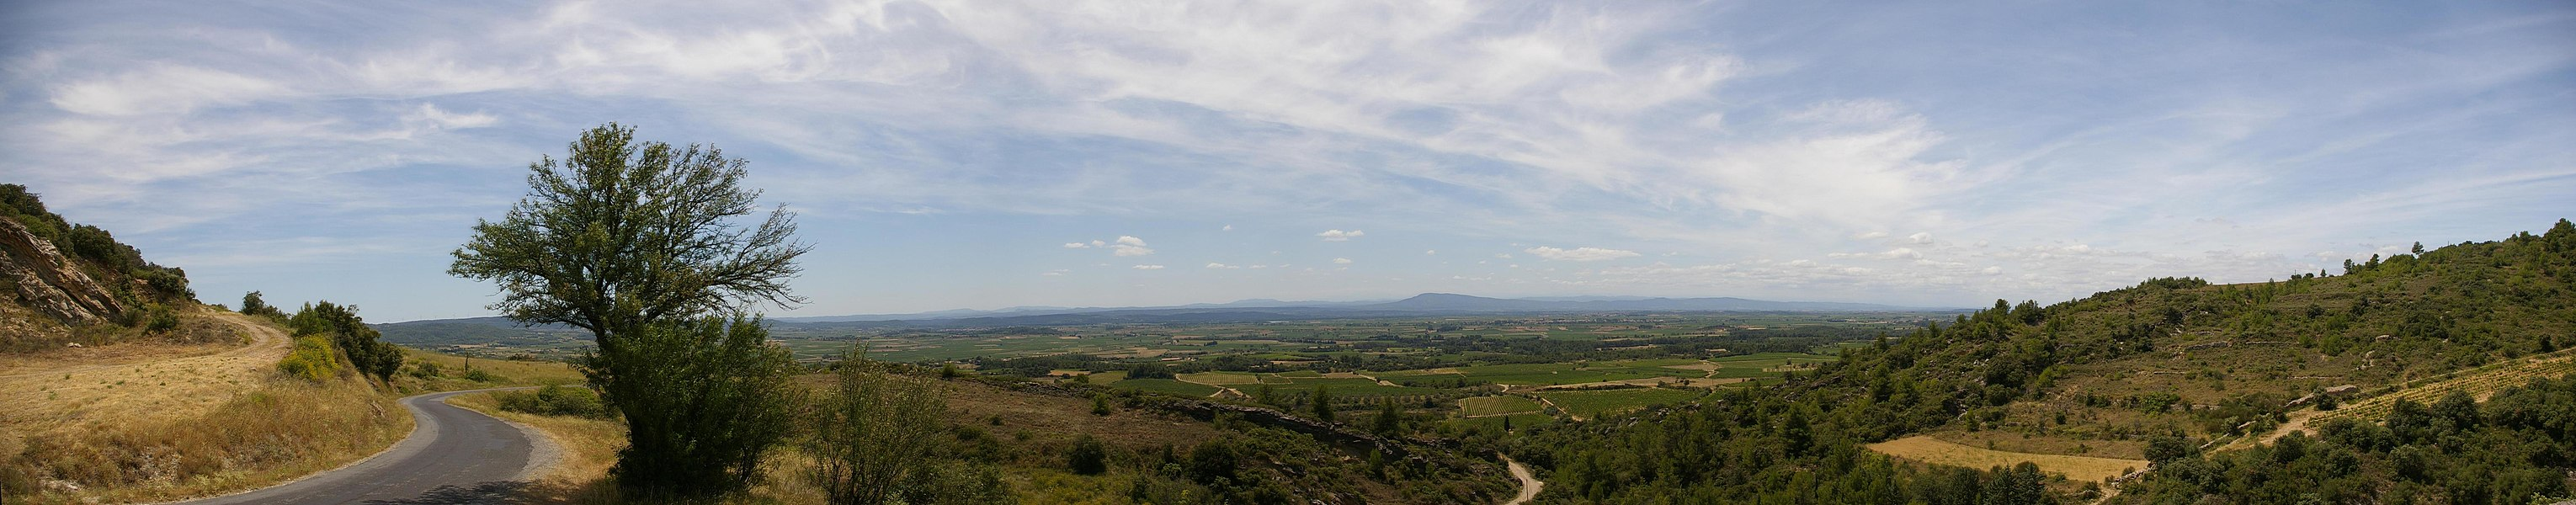 Panoramic view of the Aude valley, looking south, taken from a promontory just north of Cesseras, near Minerve, about 30 kms east of Carcassonne. Individual pictures made into a panoramic using AutoStitch. Geodata is slightly approximate but not off by more than a few hundred metres.